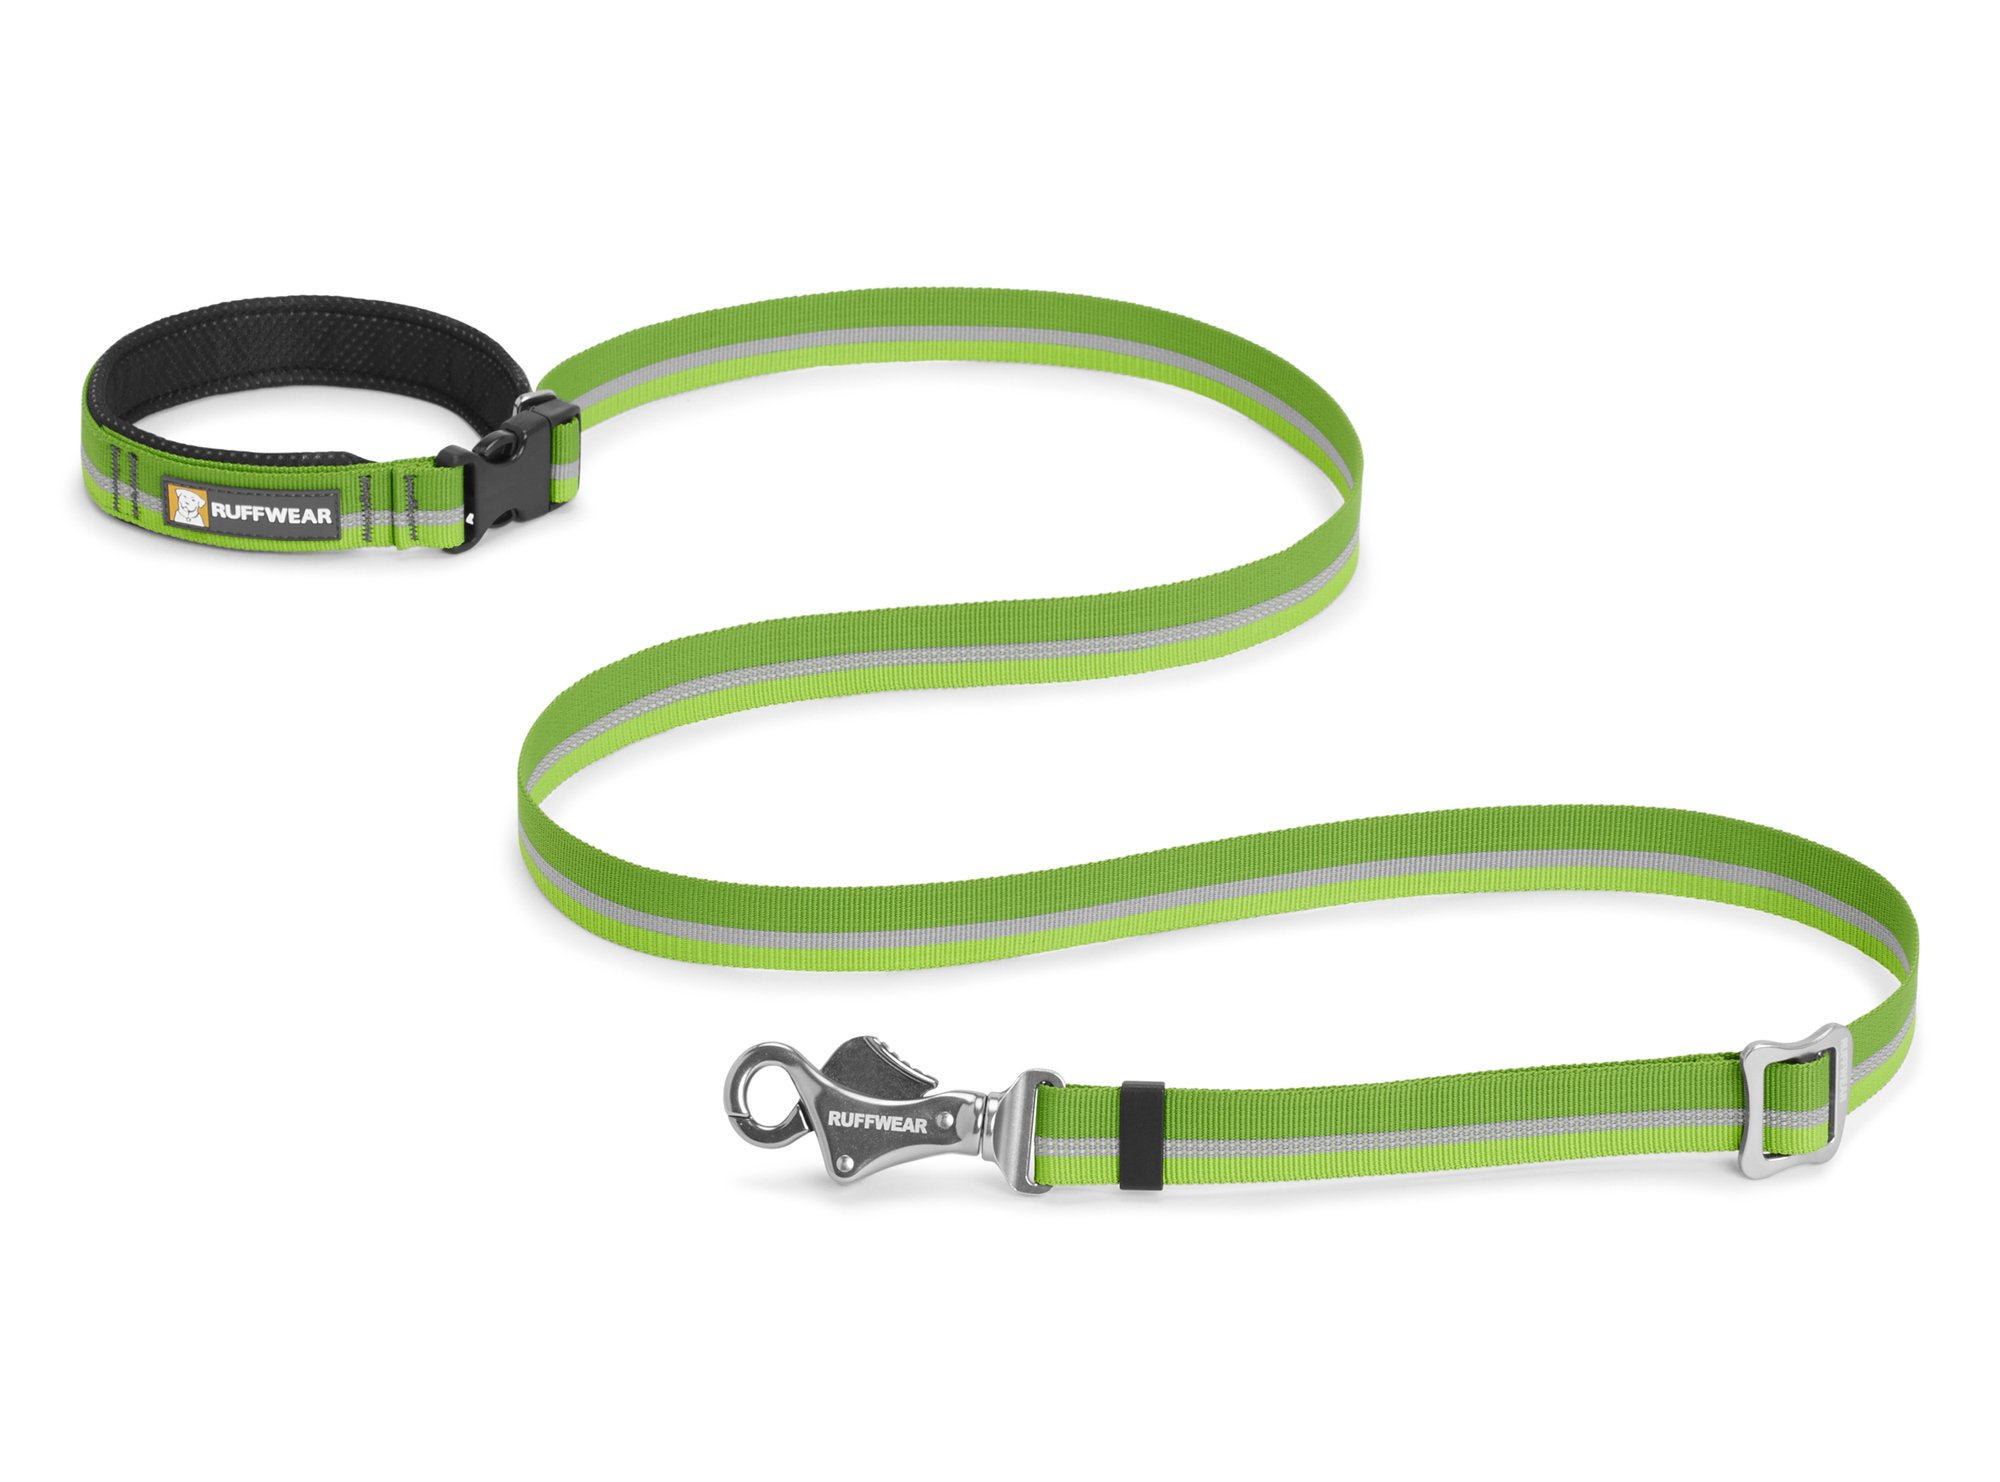 RUFFWEAR - Slackline Leash, Meadow Green (2017) by RUFFWEAR